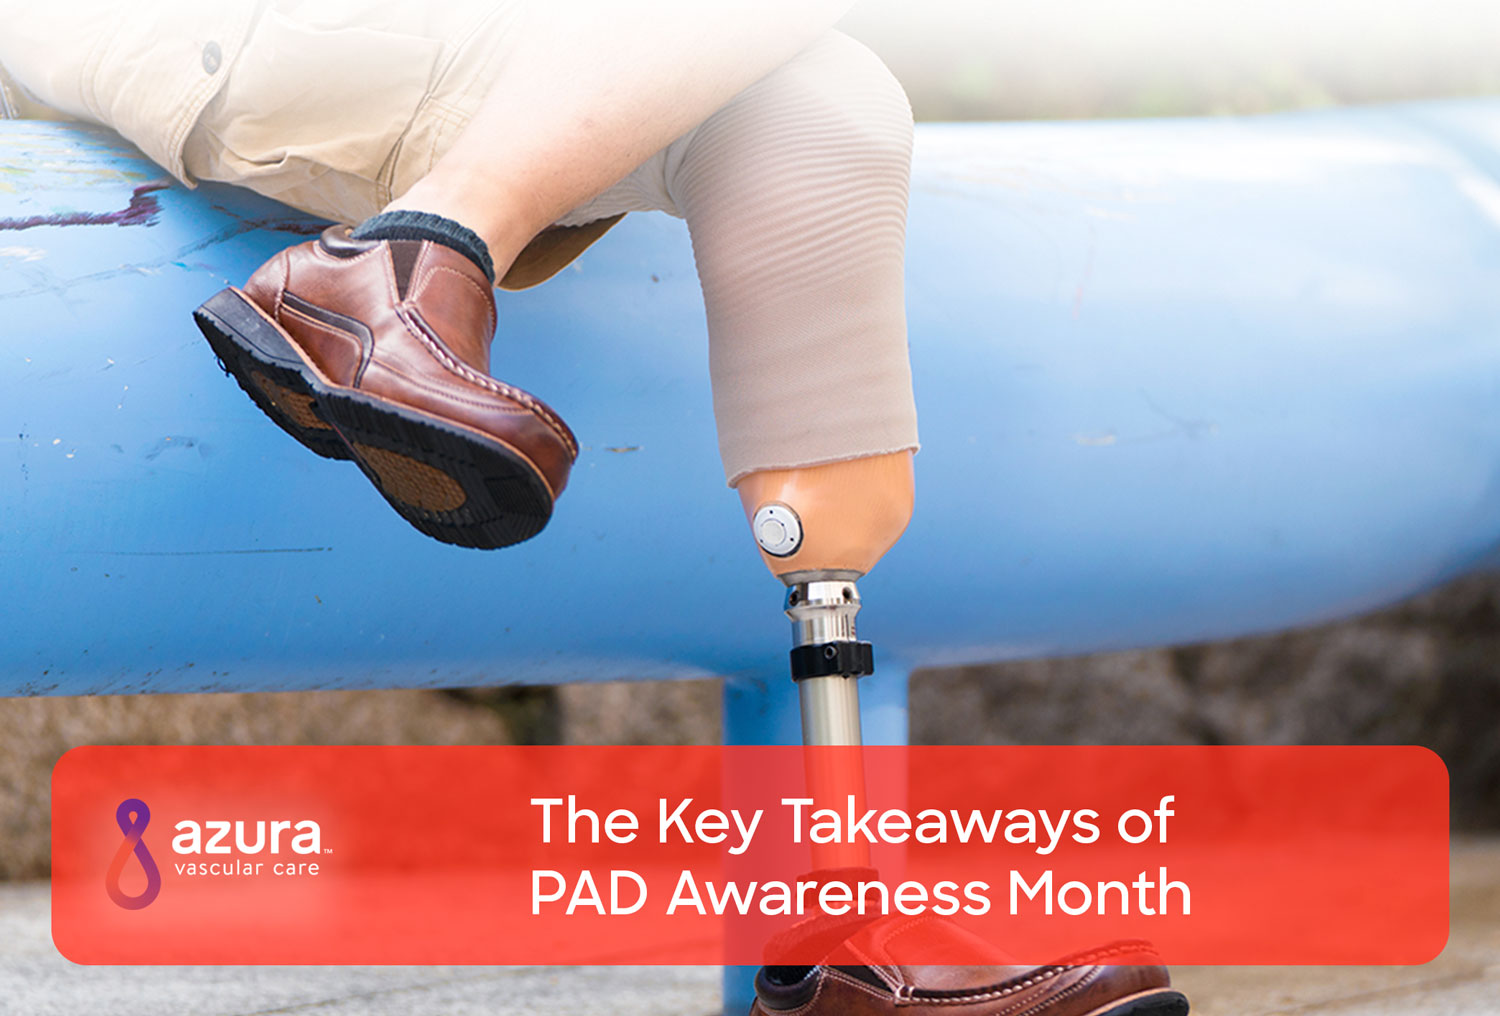 The Key Takeaways Of Pad Awareness Month